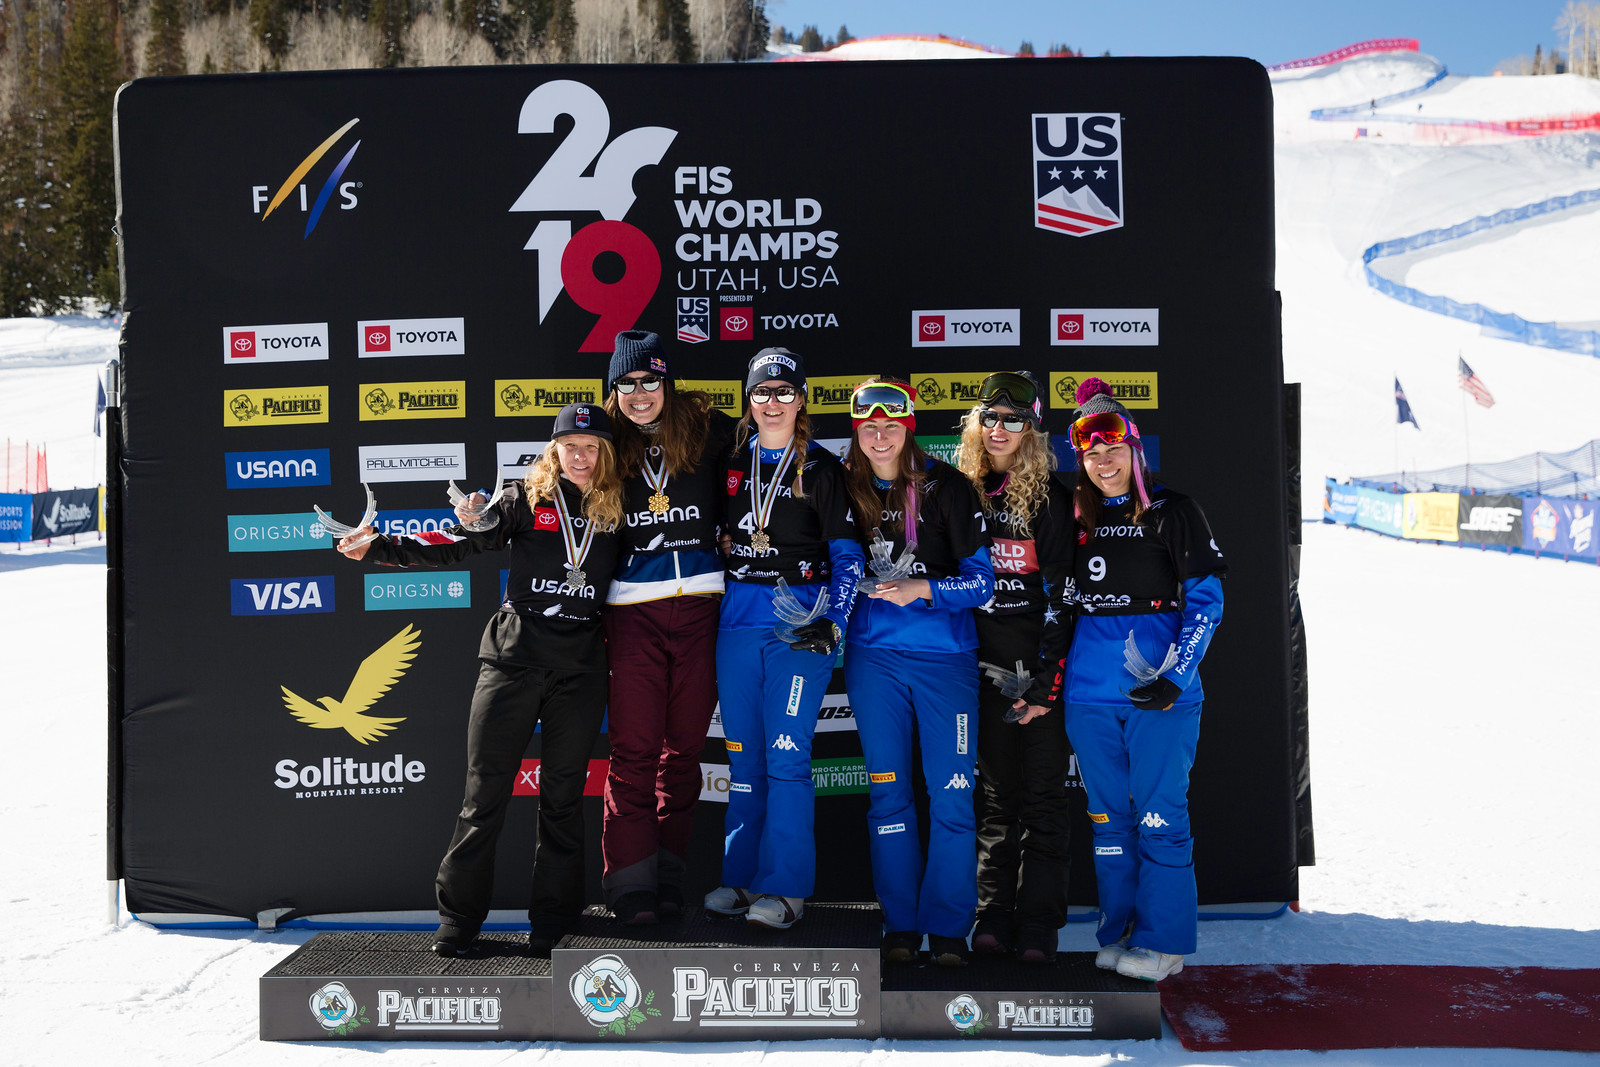 Pacifico SBX Finals  2019 FIS World Champs presented by Toyota - Solitude, Utah Photo: U.S. Ski & Snowboard